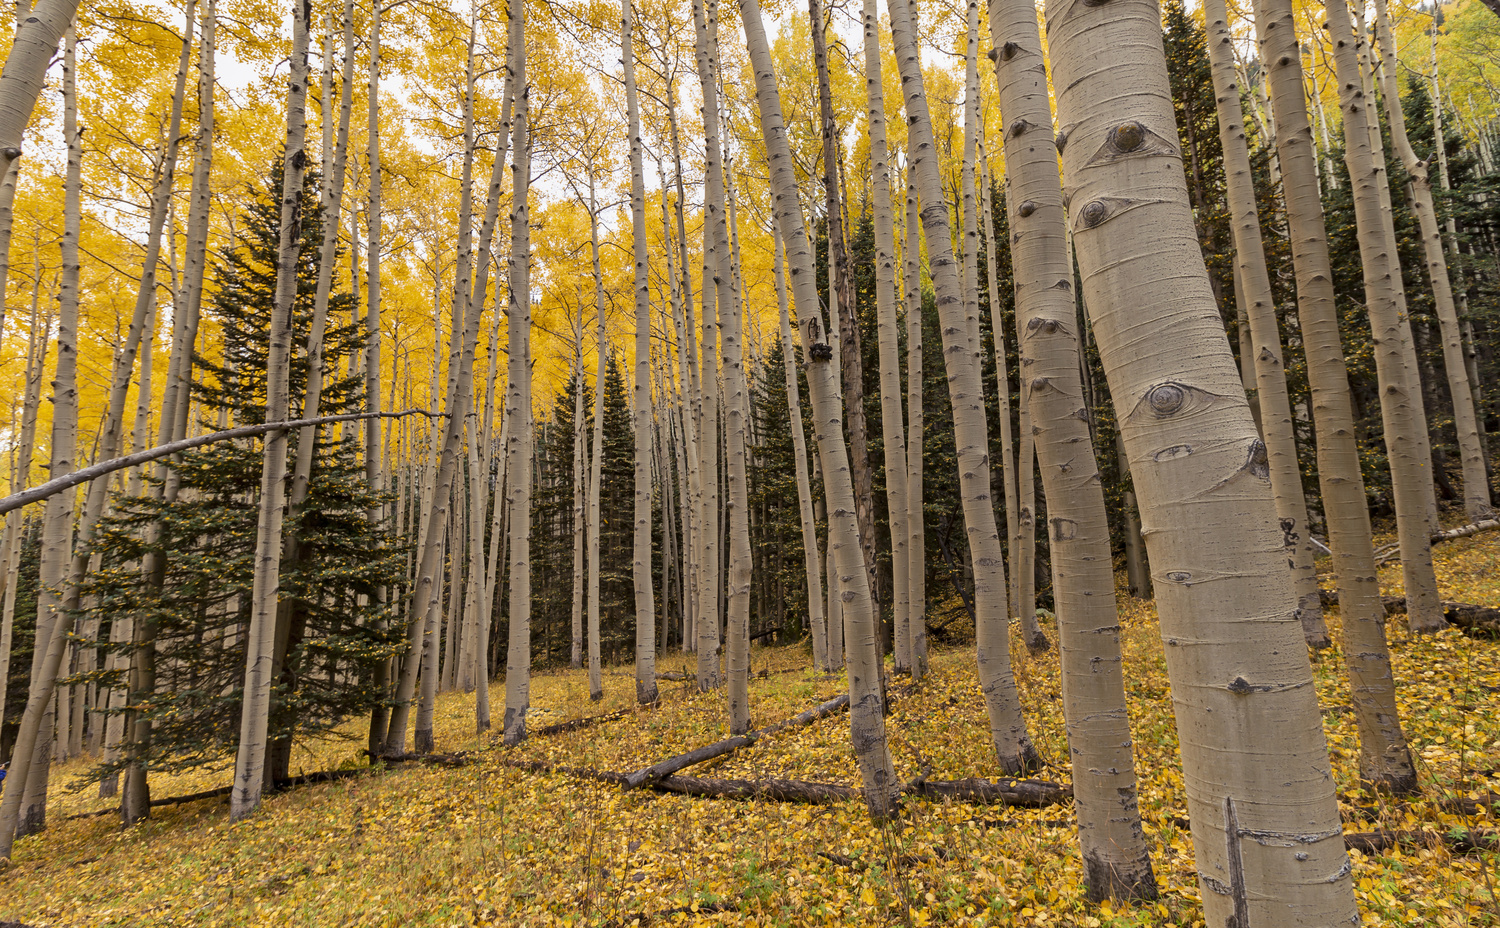 Stunning Aspen Forest In The Fall by Ray Redstone